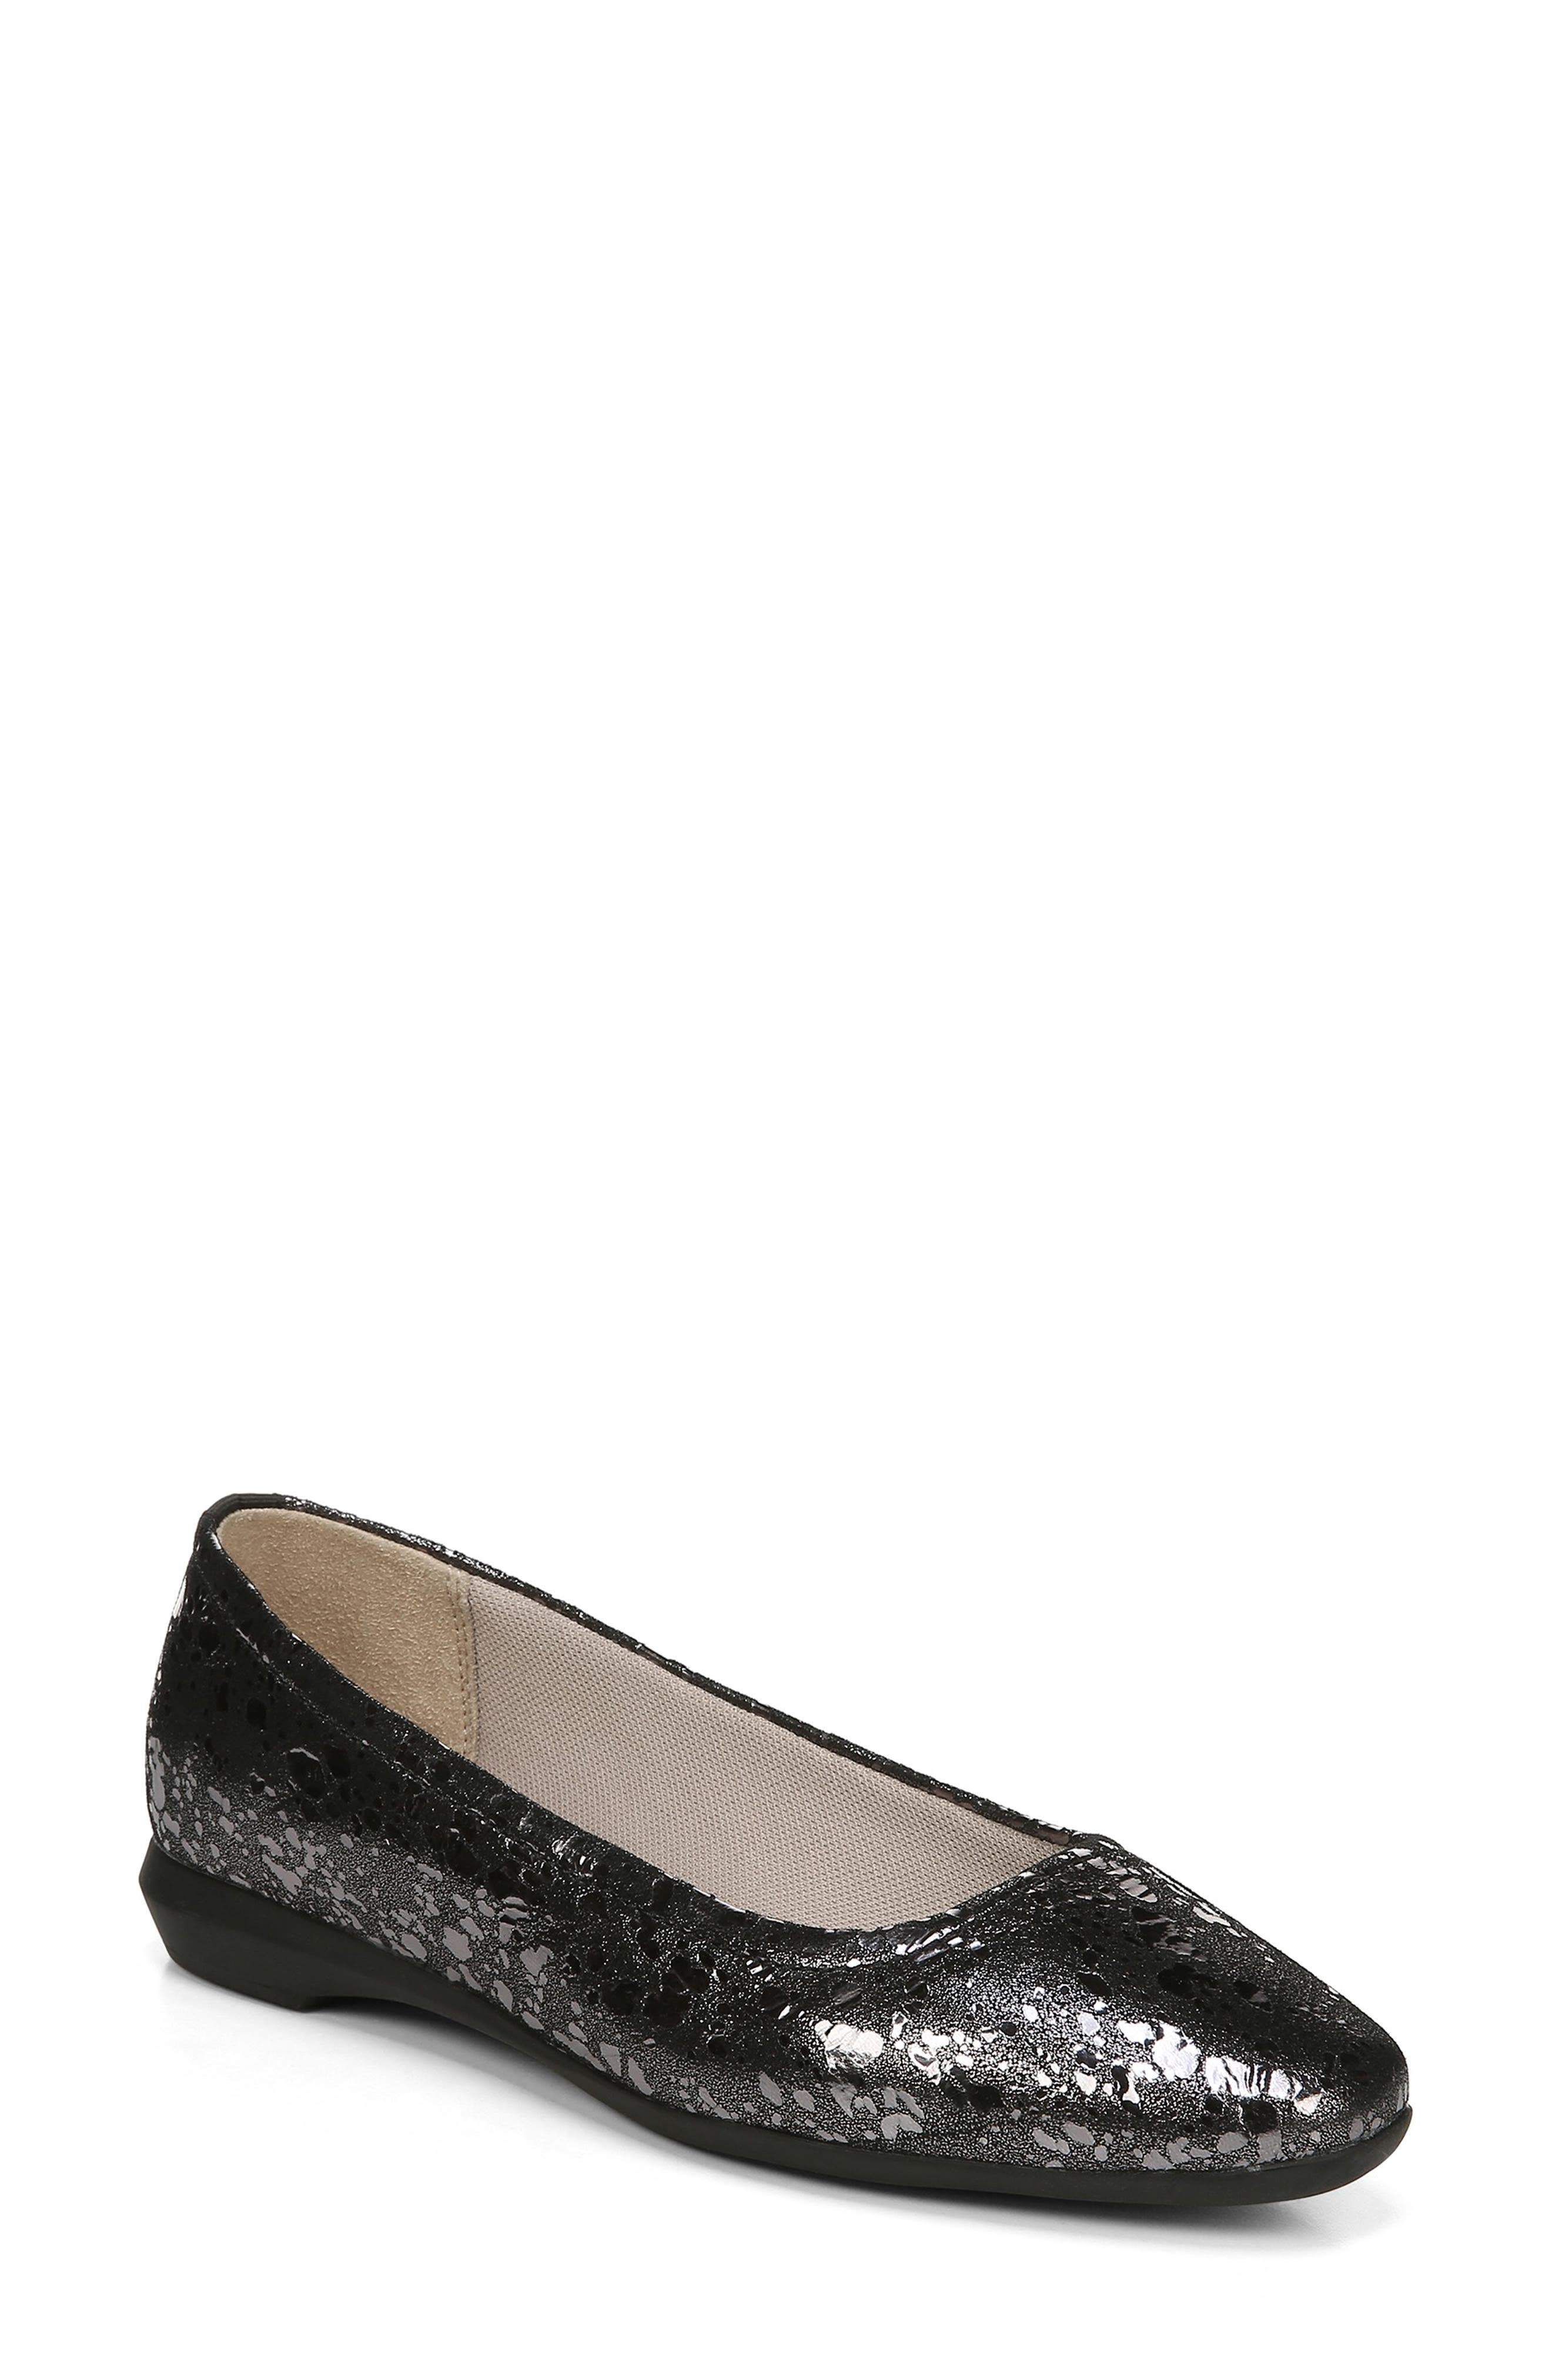 Naturalizer Alya Flat- Metallic